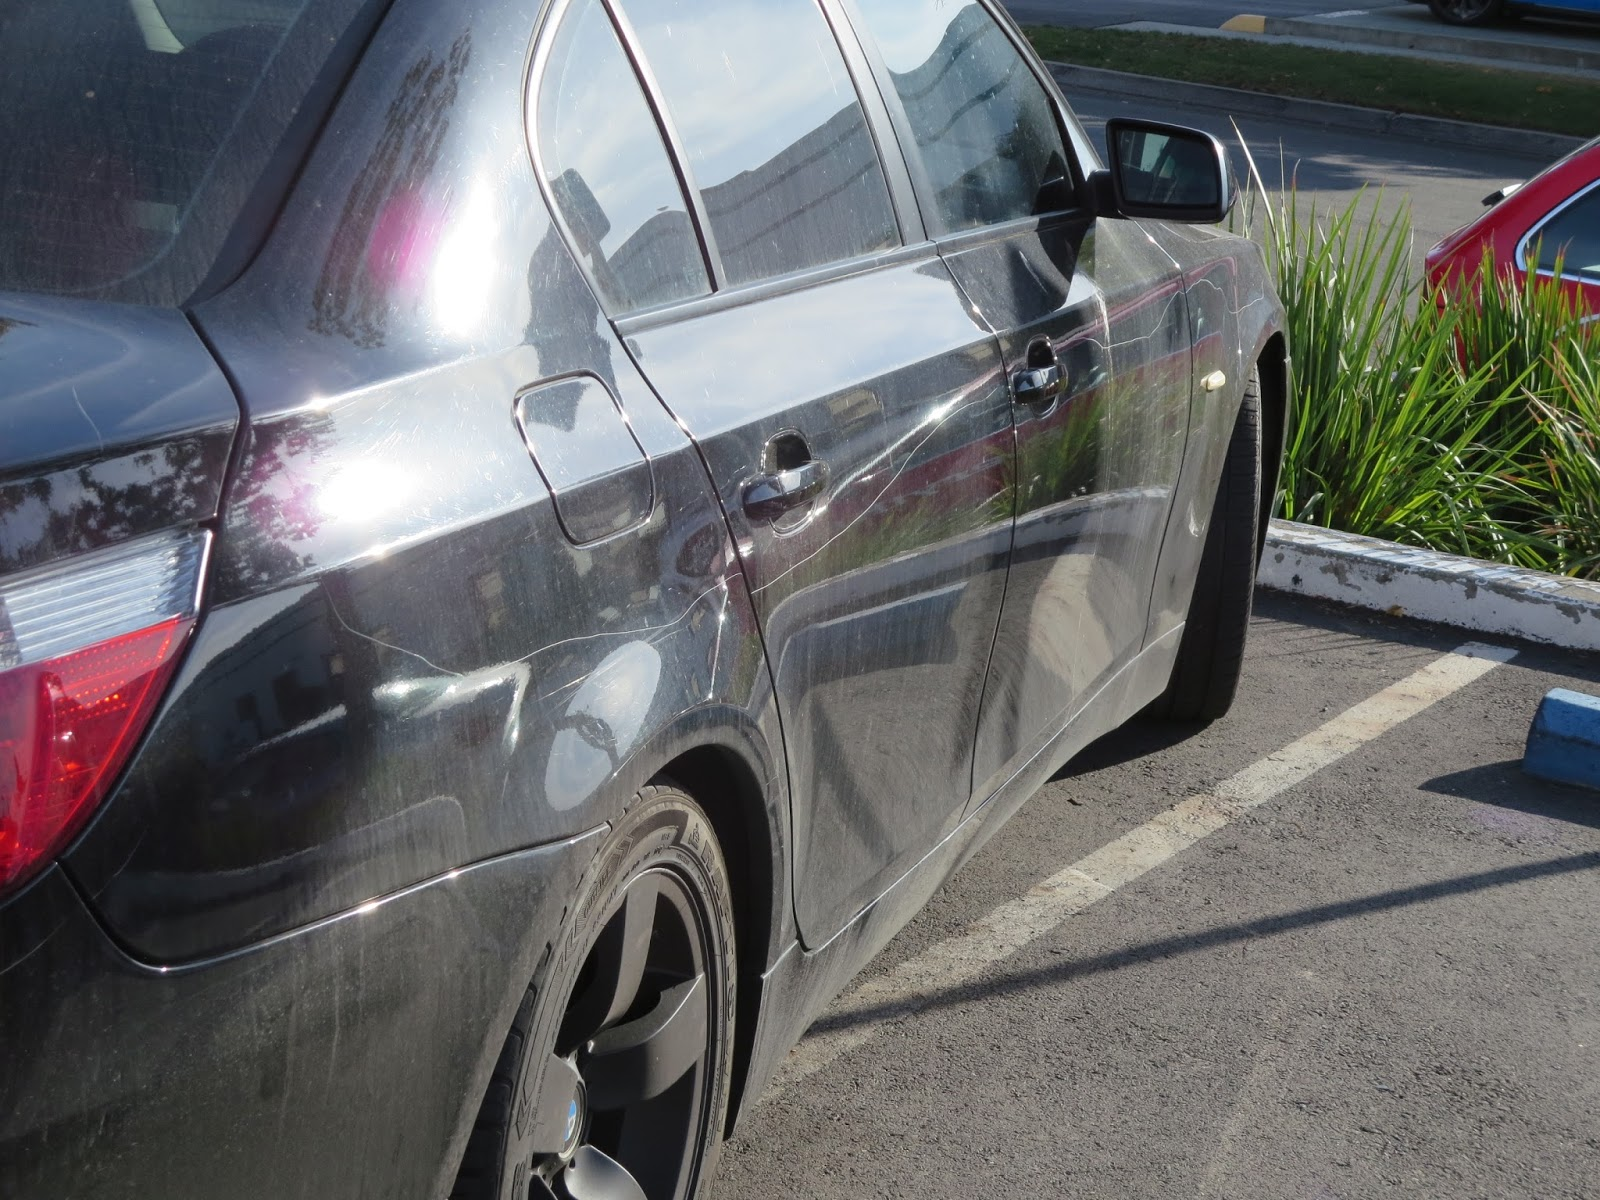 Keyed Car And Vandalism Insurance Claims